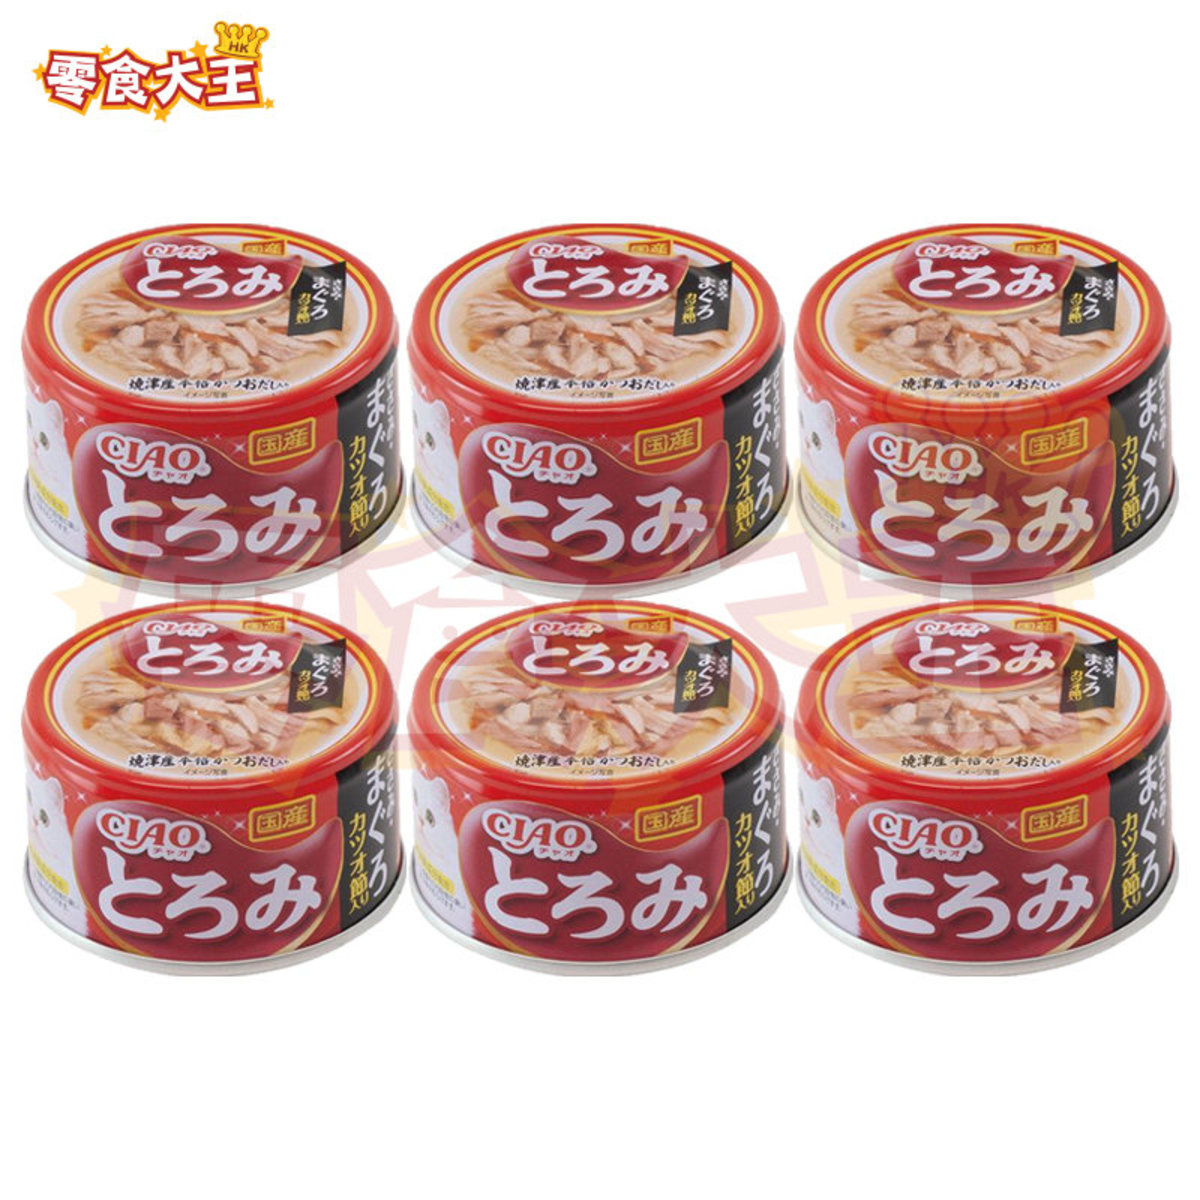 Chicken Breast & Tuna Squid Soup Canned Cat Food - A-42 80g x 6 cans  (4901133061769_6)